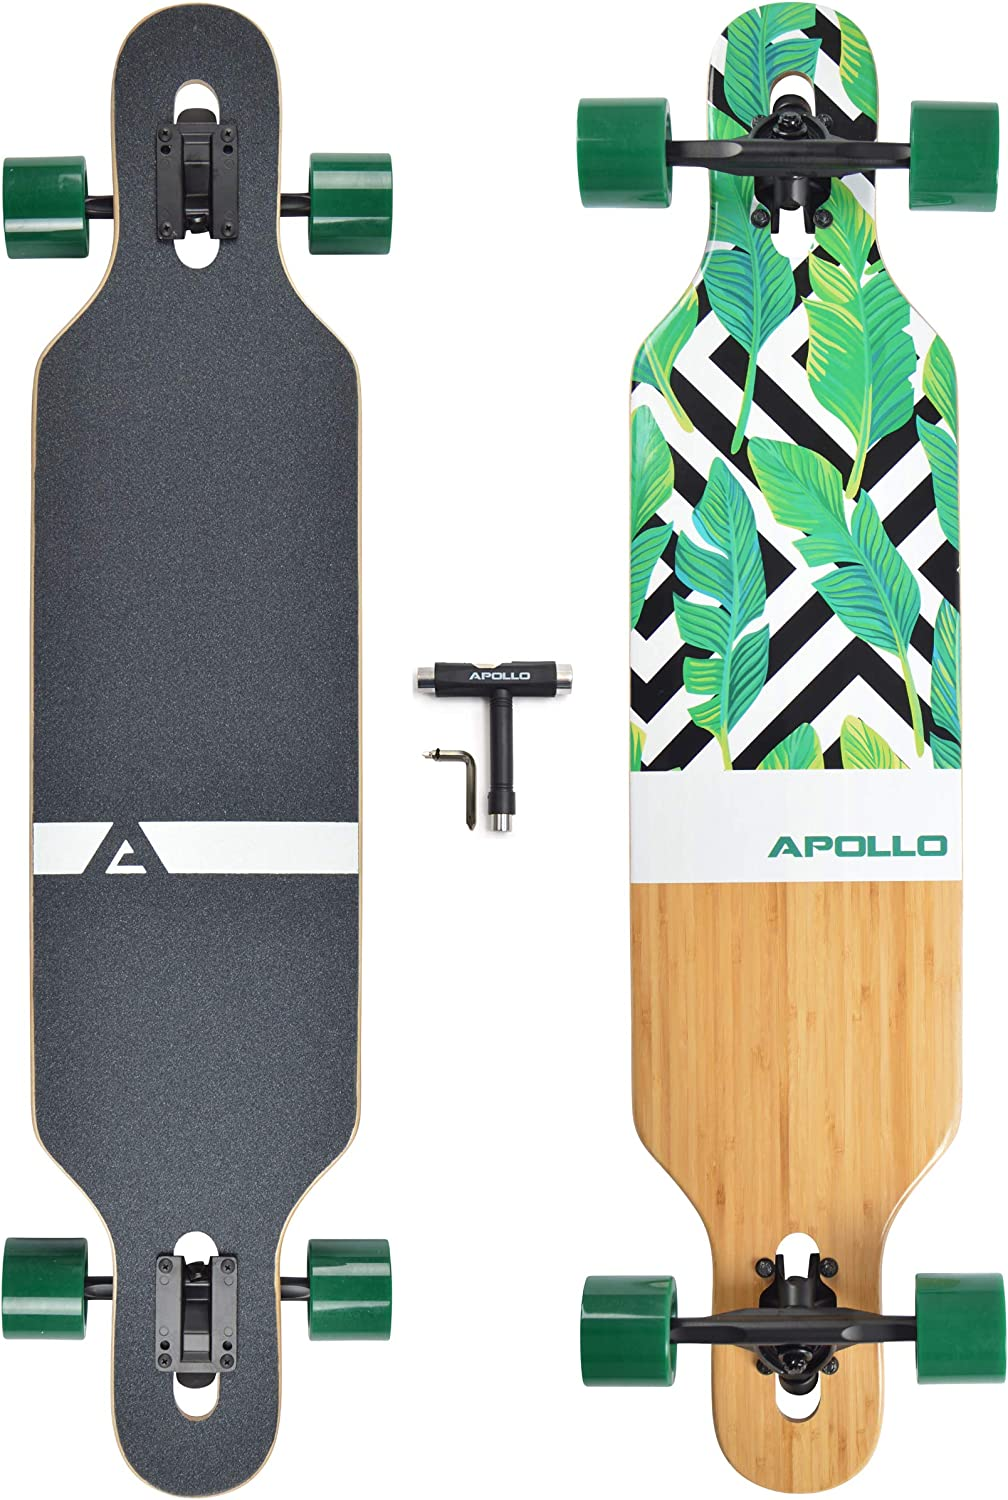 APOLLO Longboard for Professionals and Beginners